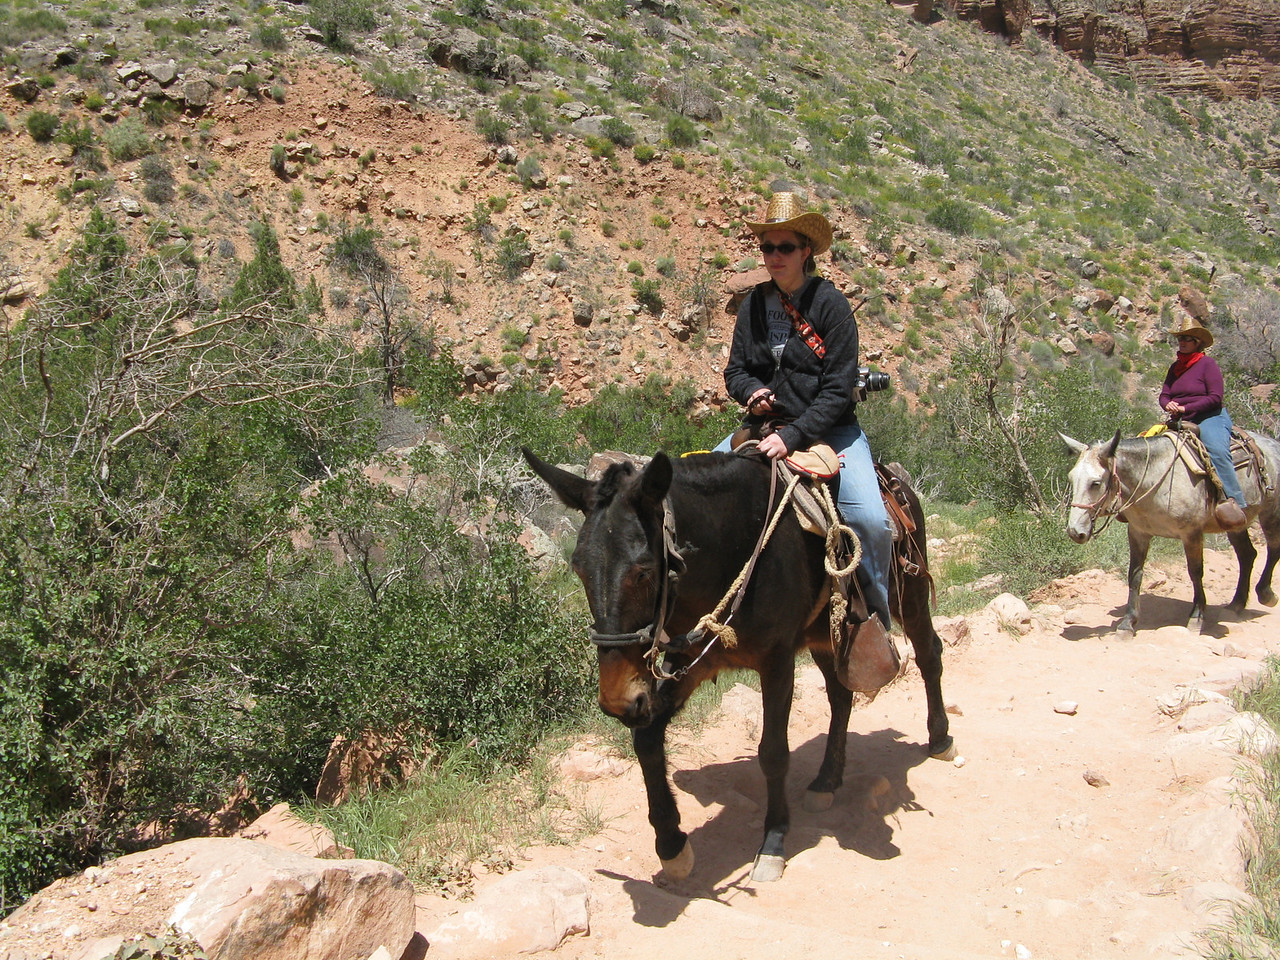 We were passed by mule riders going up the trail.